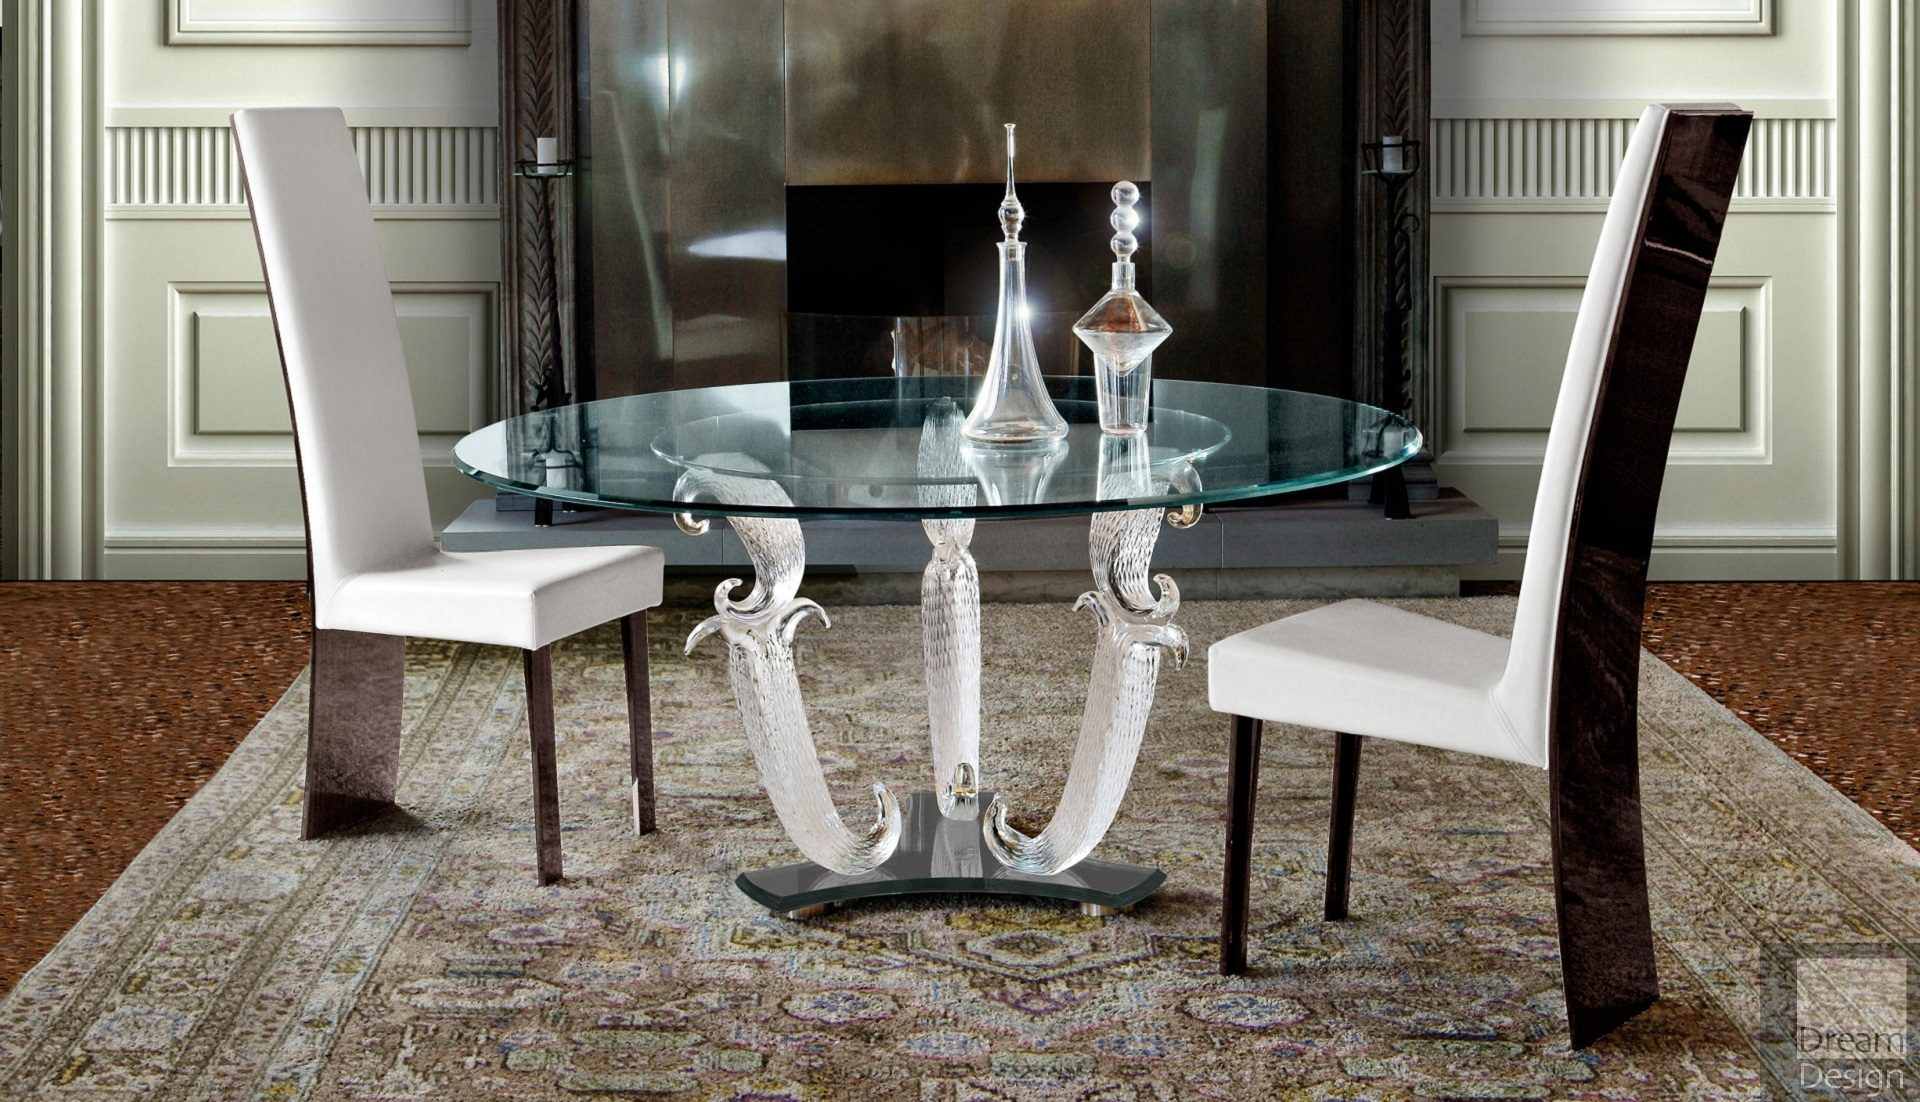 Reflex Angelo Casanova 72 Round Table